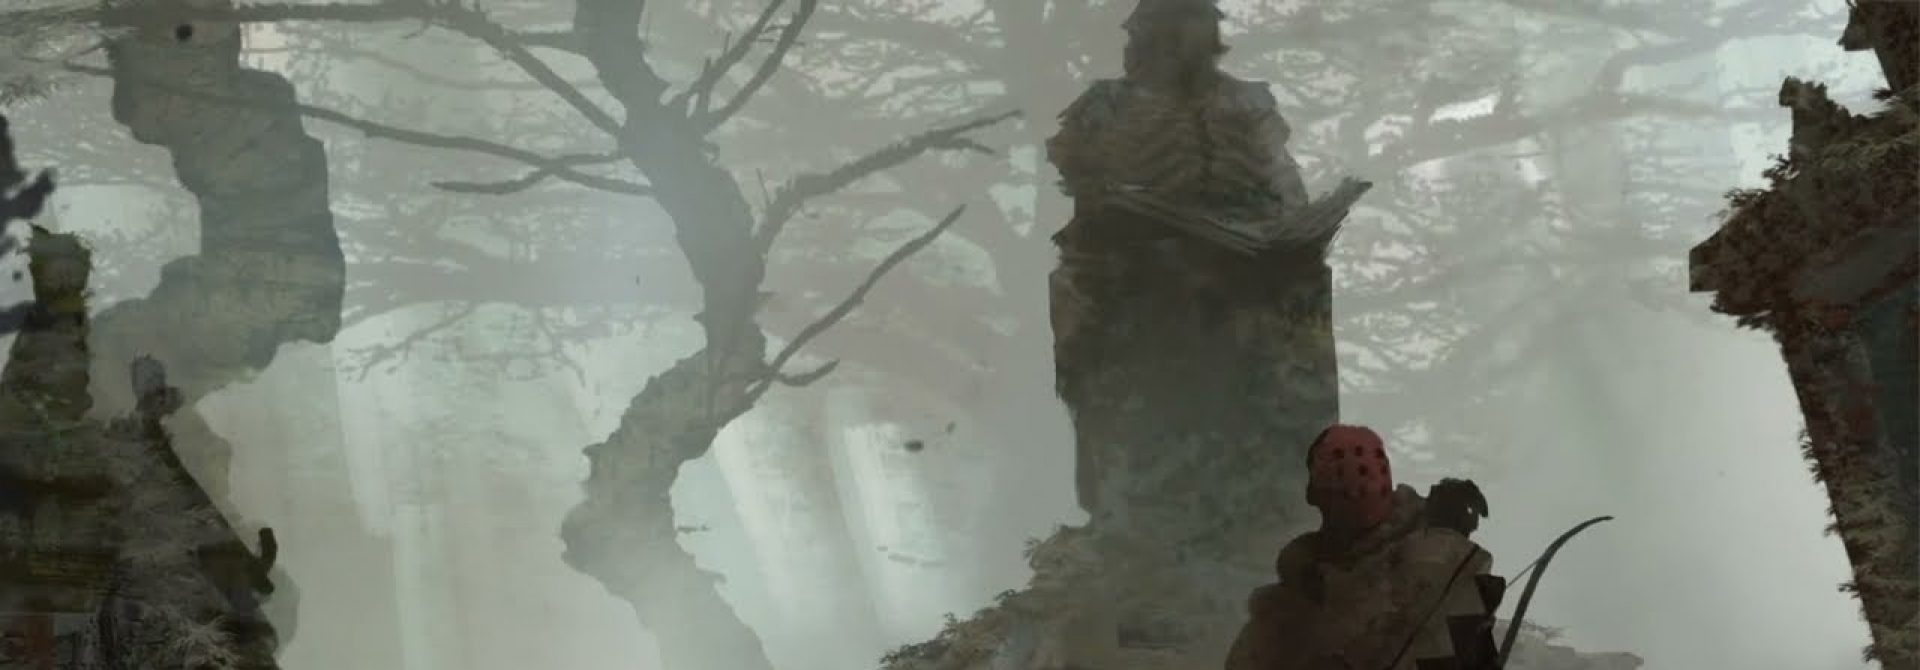 Ruins Of Symbaroum Campaign Has Raised Nearly $500K